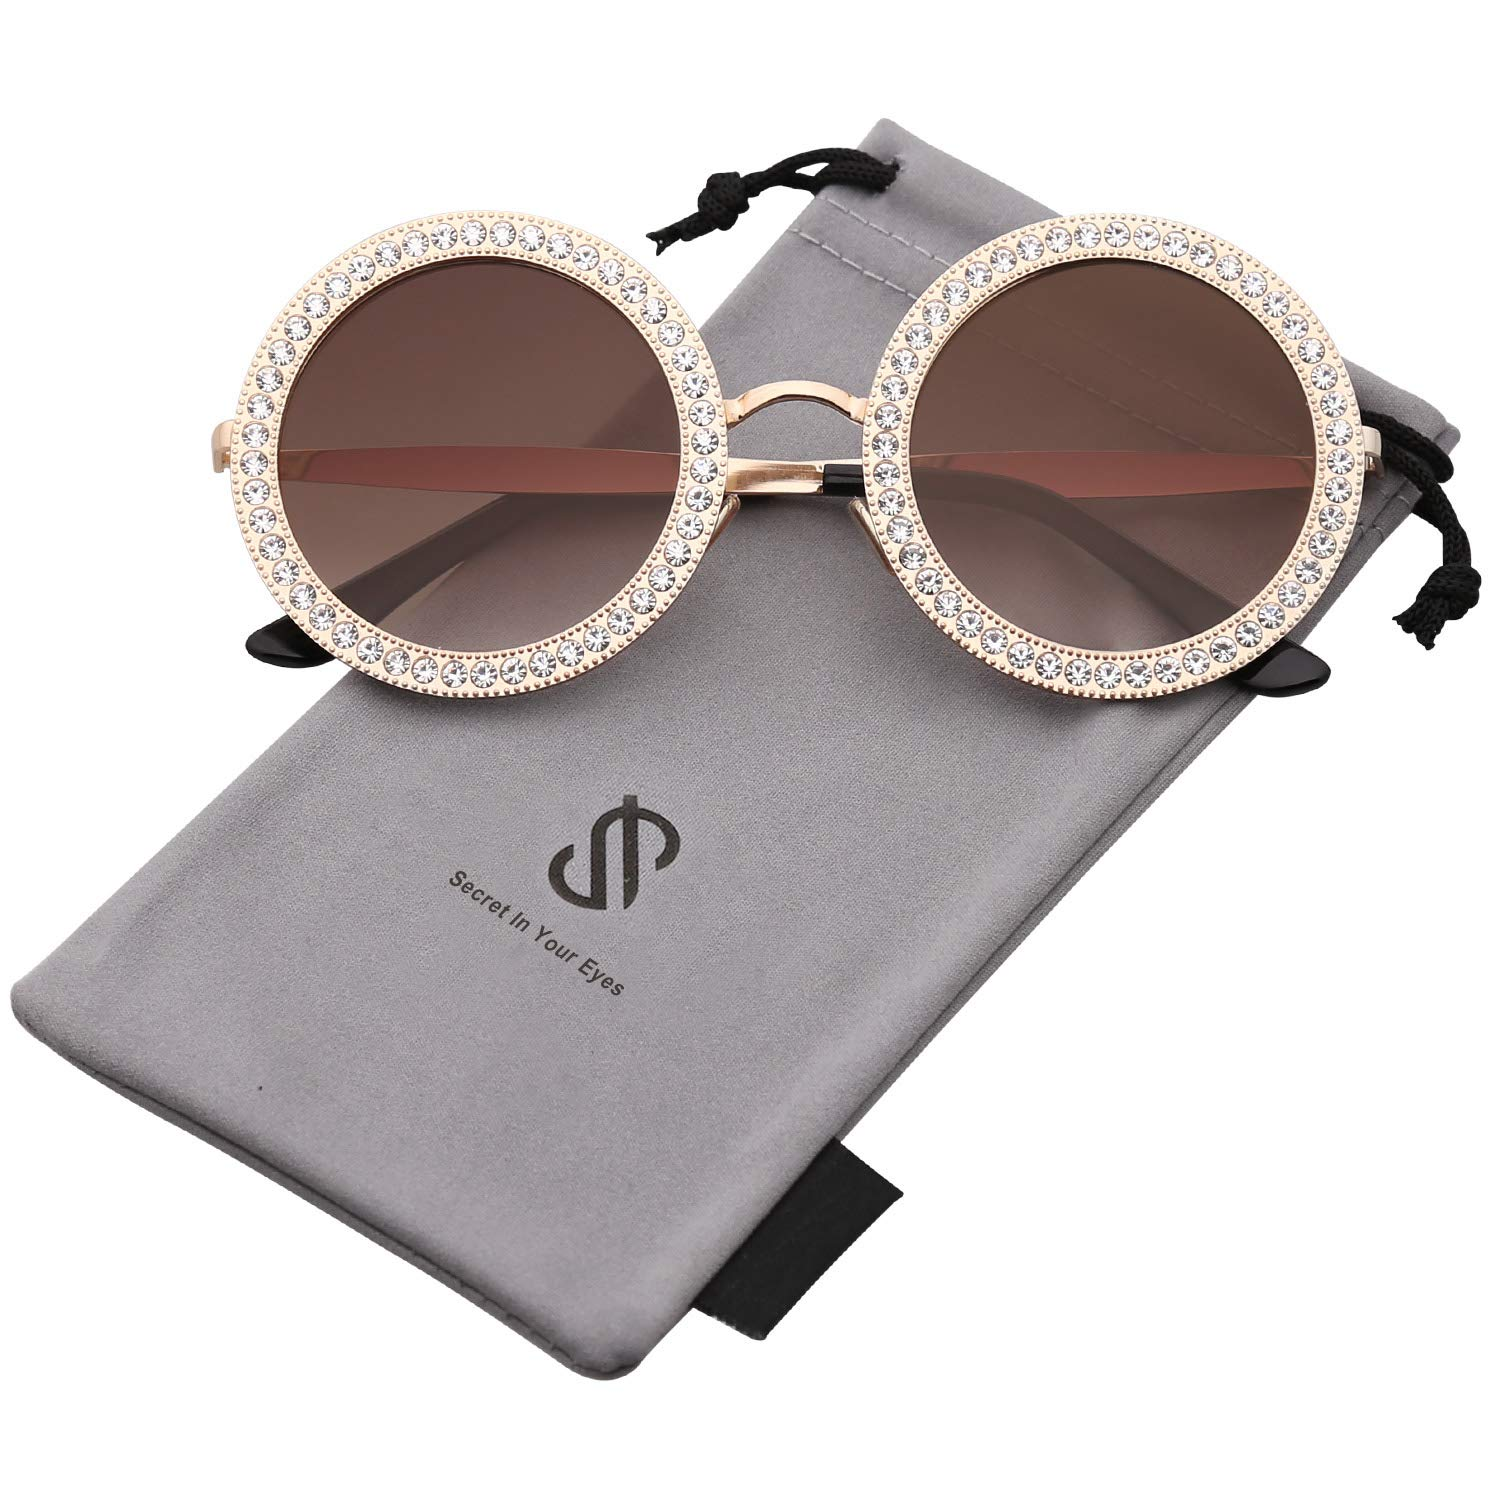 SOJOS Round Oversized Rhinestone Sunglasses for Women Festival Sunglasses SJ1095 with Gold Frame/Gradient Brown Lens with White Diamonds by SOJOS